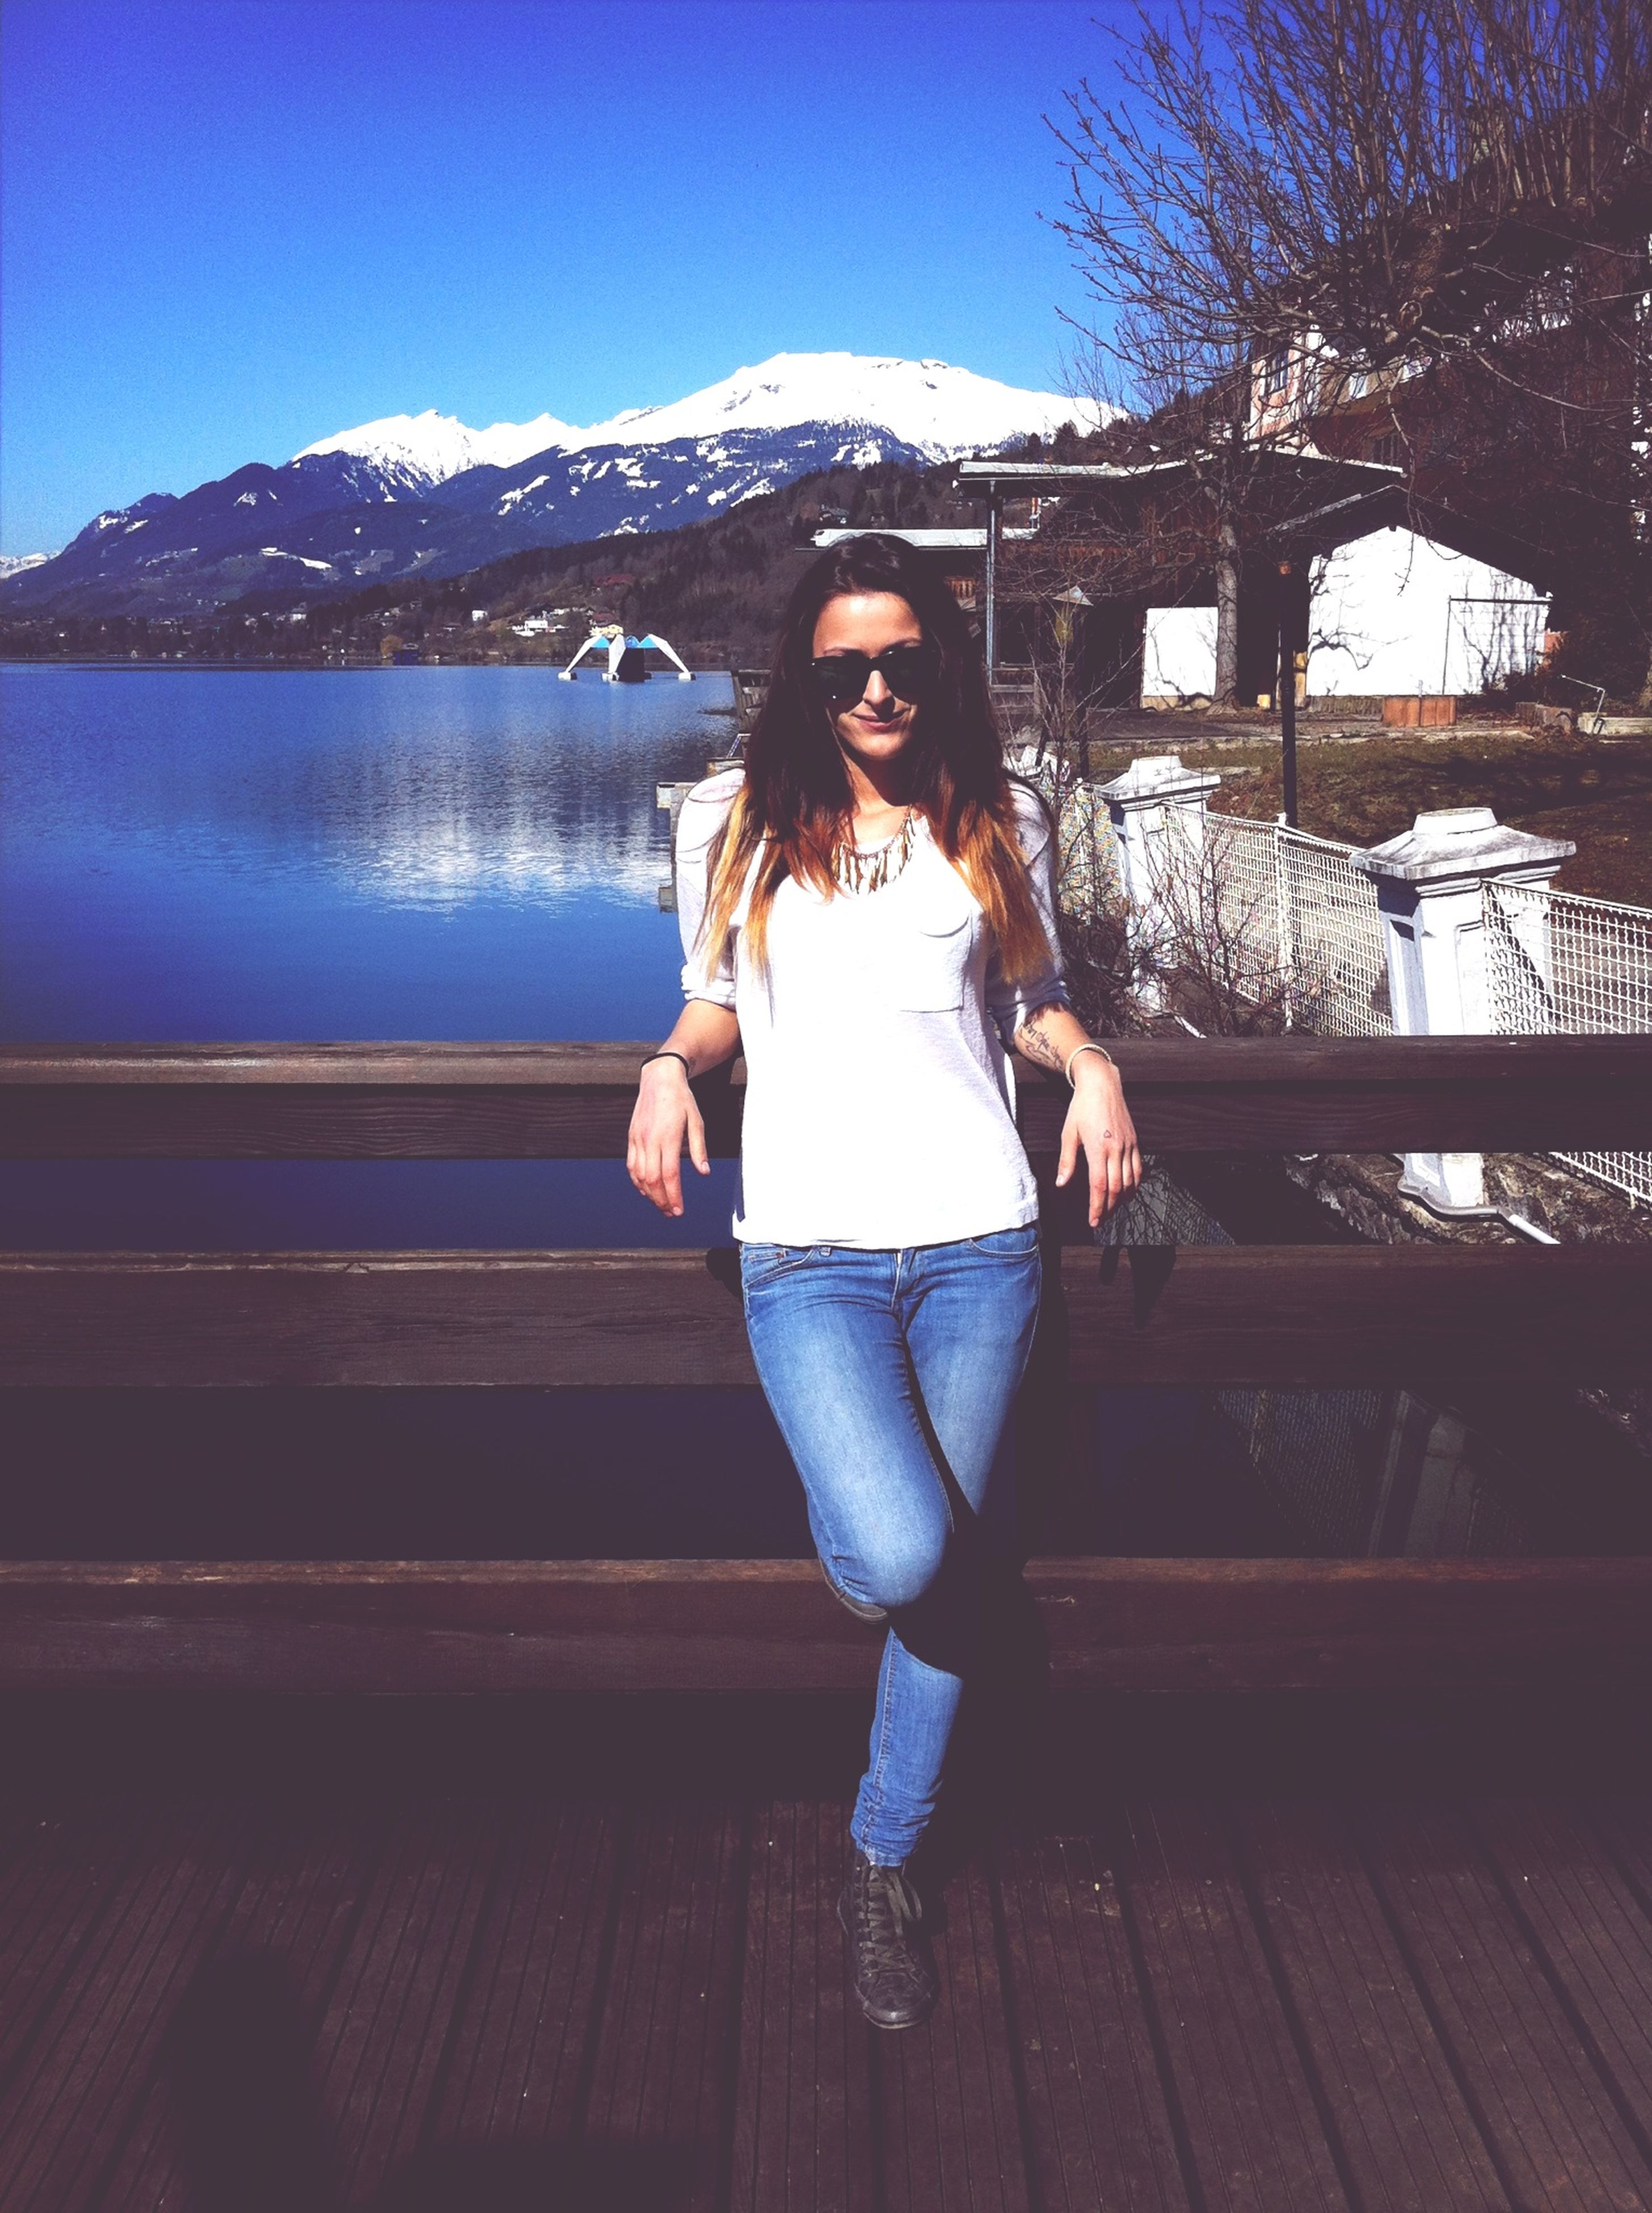 young adult, person, lifestyles, leisure activity, full length, young women, casual clothing, water, looking at camera, portrait, front view, smiling, standing, sunglasses, happiness, vacations, sunlight, mountain